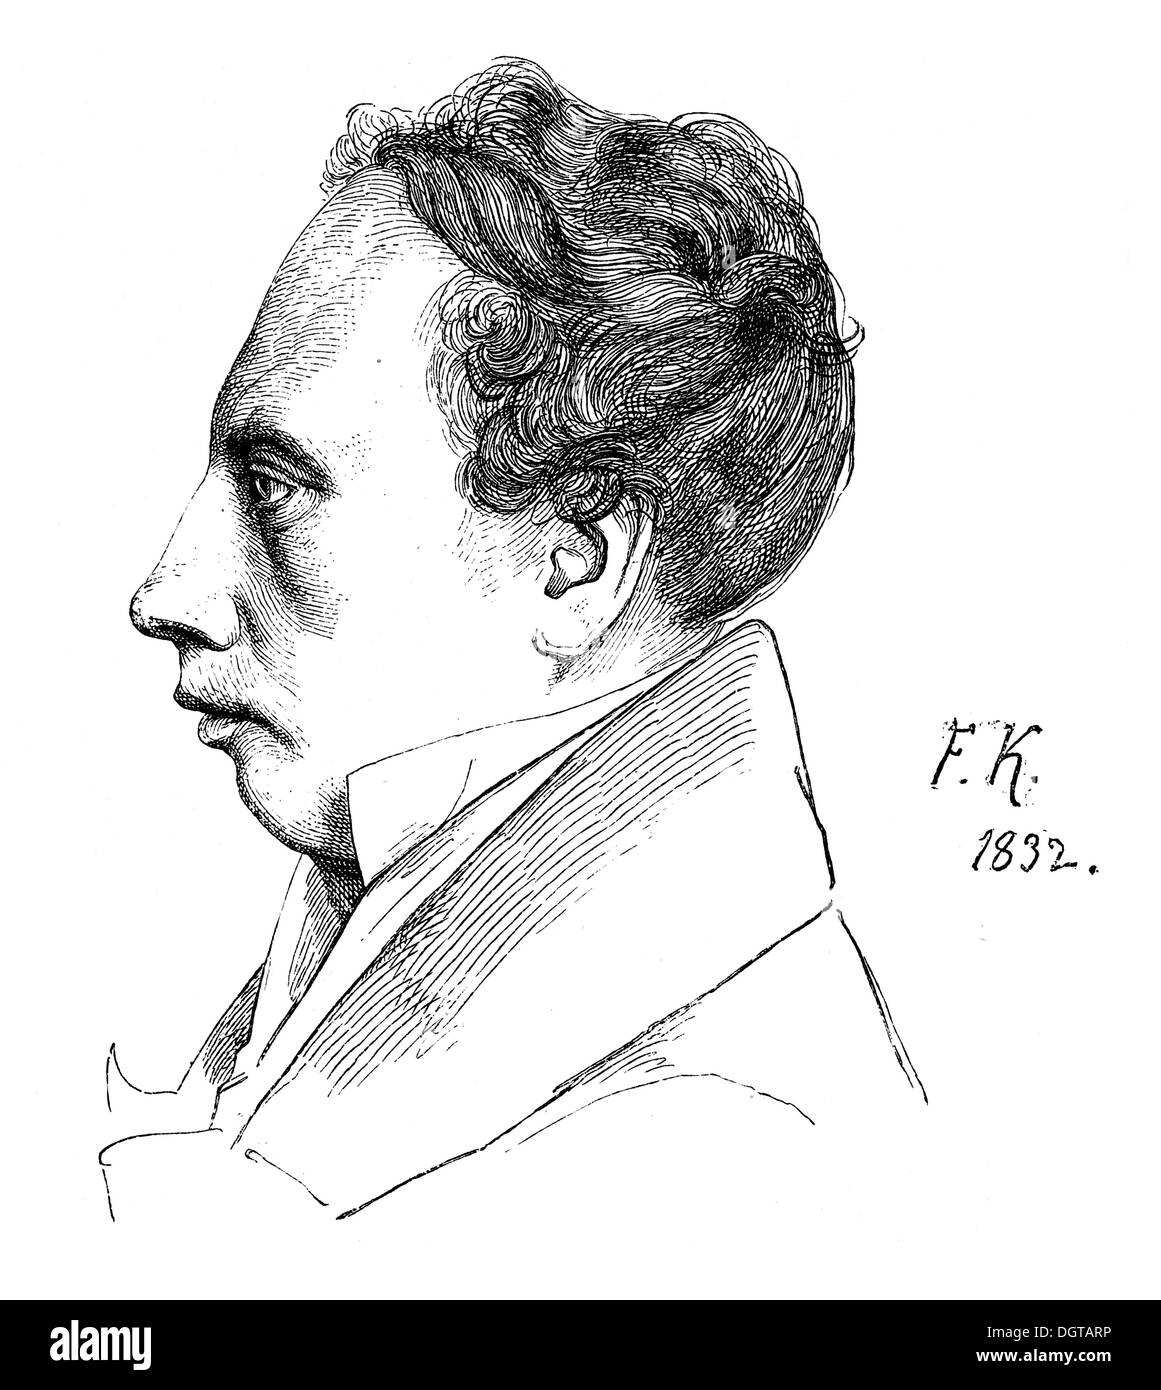 Ludwig Uhland in 1832, historic illustration from Deutsche Literaturgeschichte, a history of German literature from 1885 - Stock Image